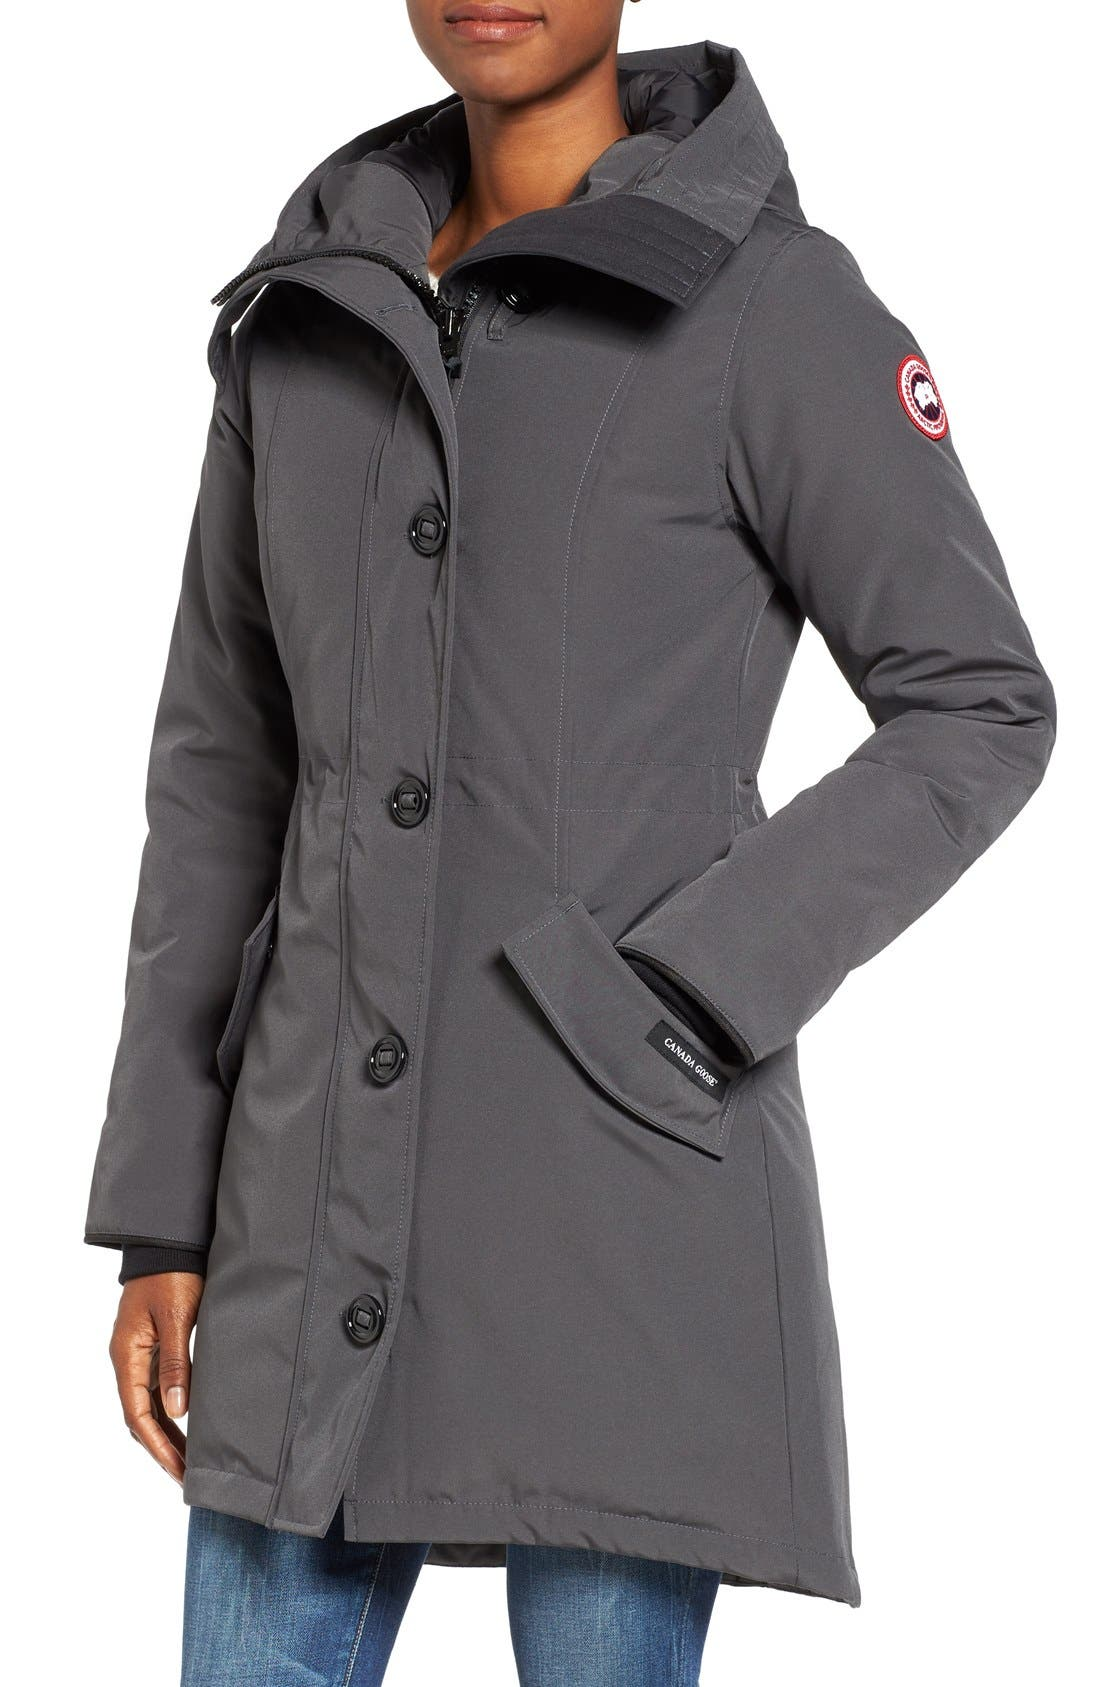 CANADA GOOSE, Rossclair Genuine Coyote Fur Trim Down Parka, Alternate thumbnail 5, color, GRAPHITE